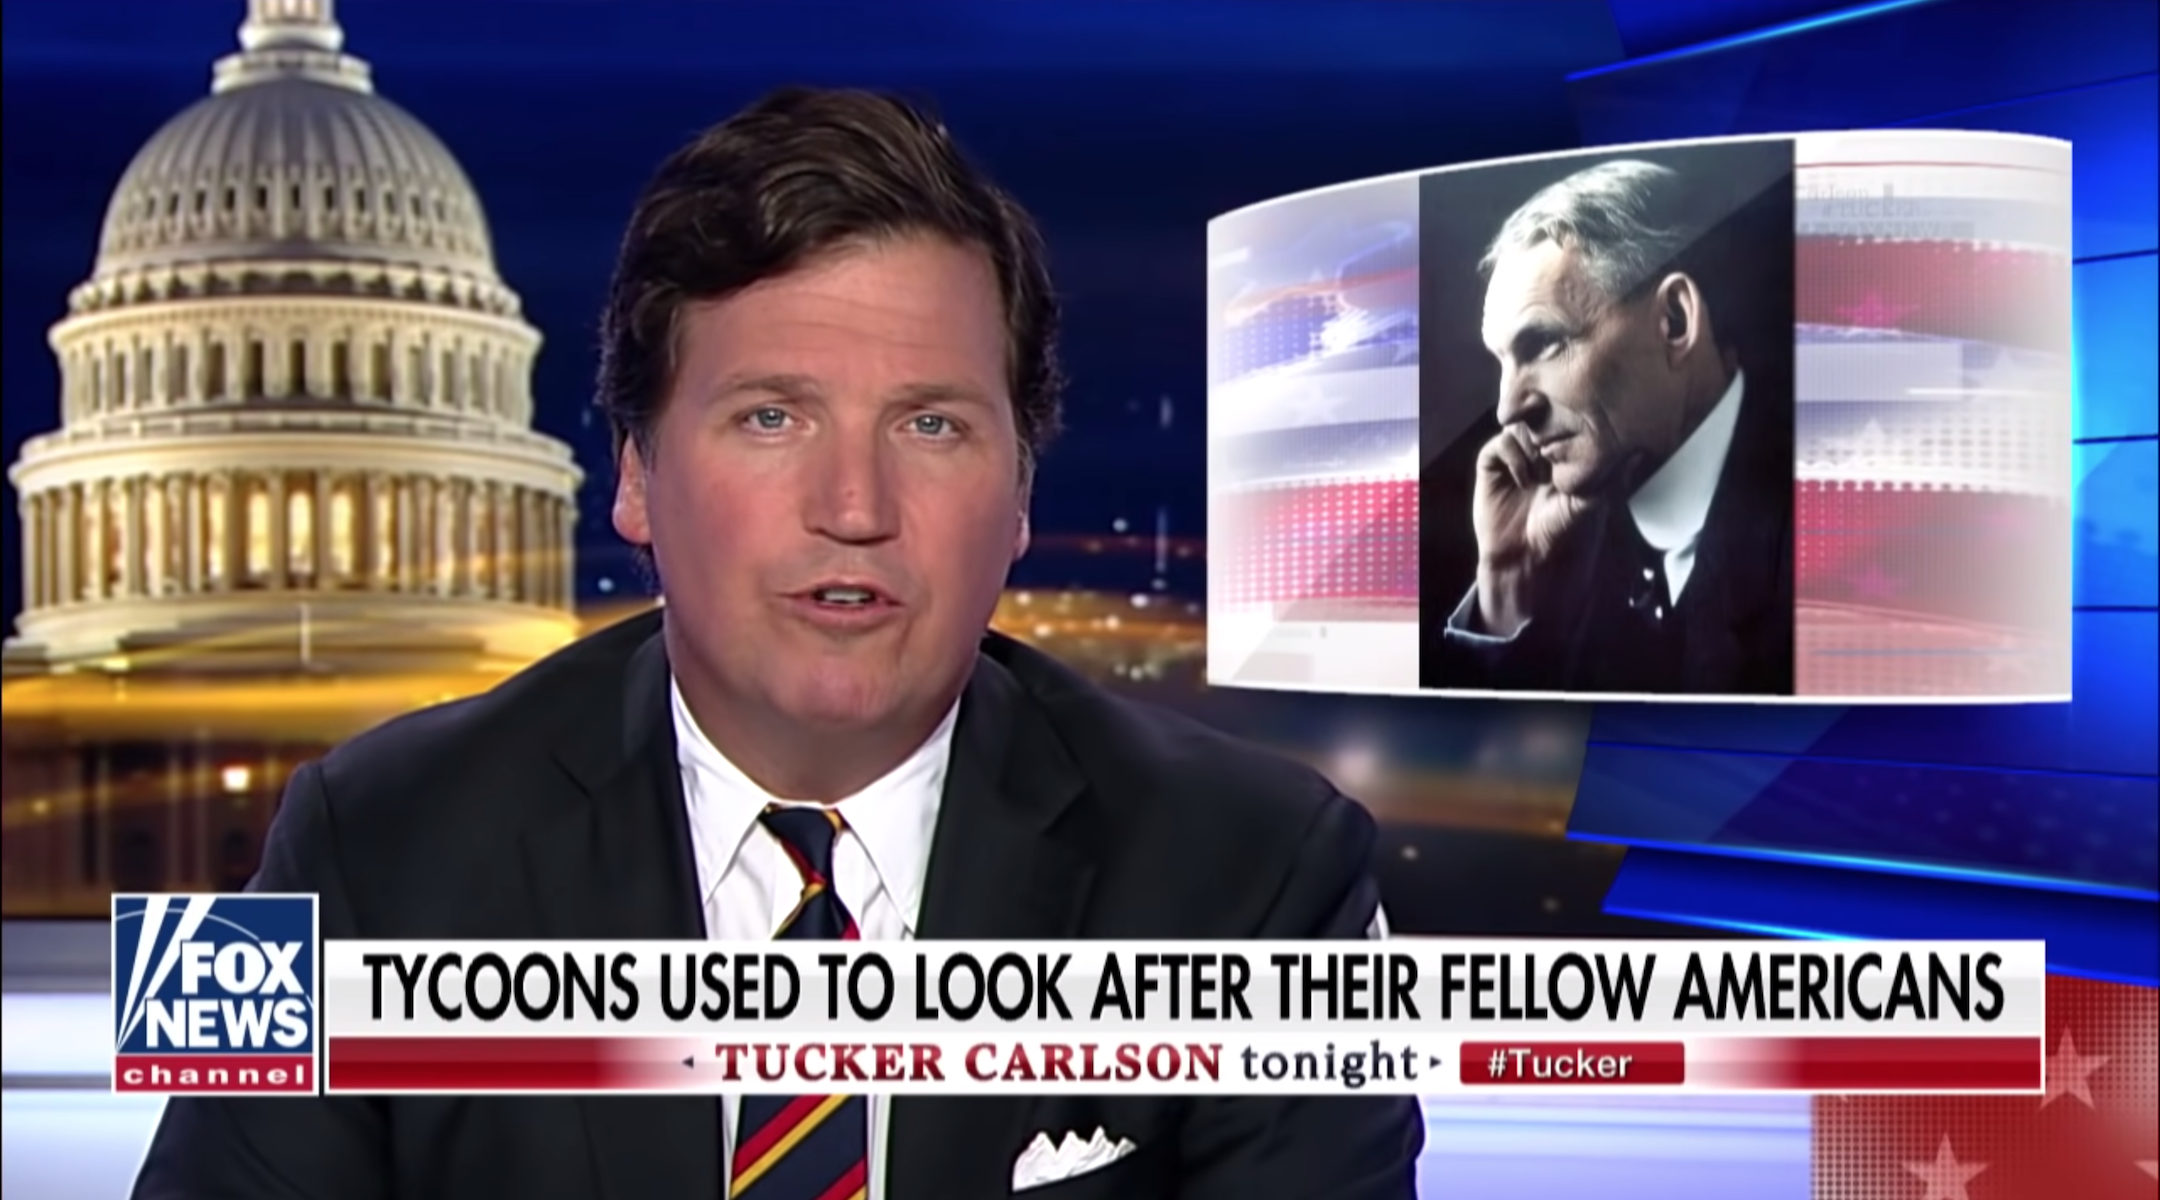 ADL chief calls for Tucker Carlson's ouster after Fox News host endorses white supremacist conspiracy...